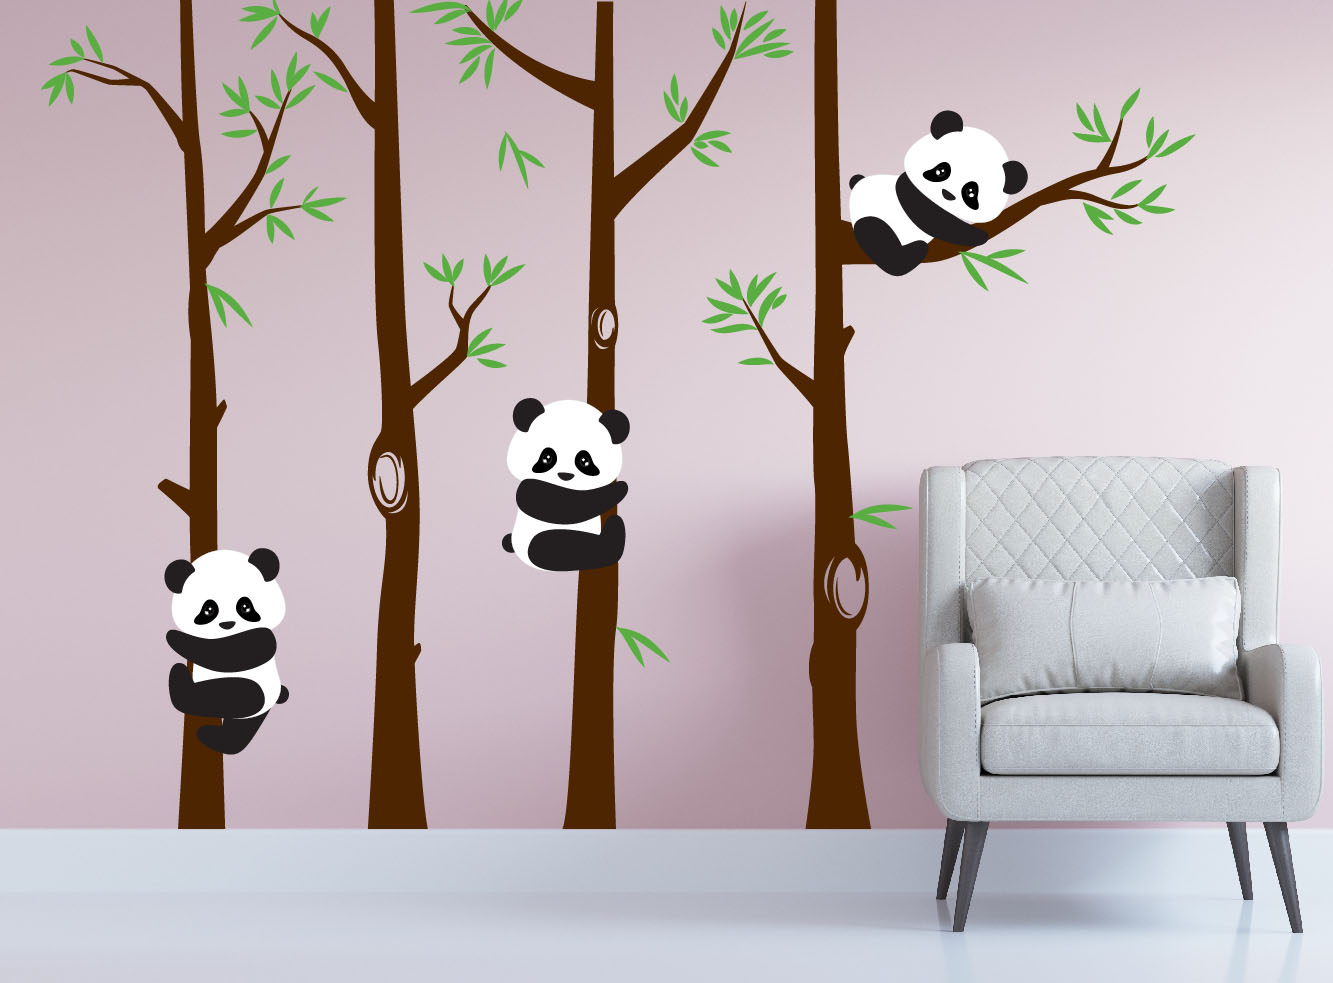 panda-bear-tree-bamboo-wall-decal.jpg